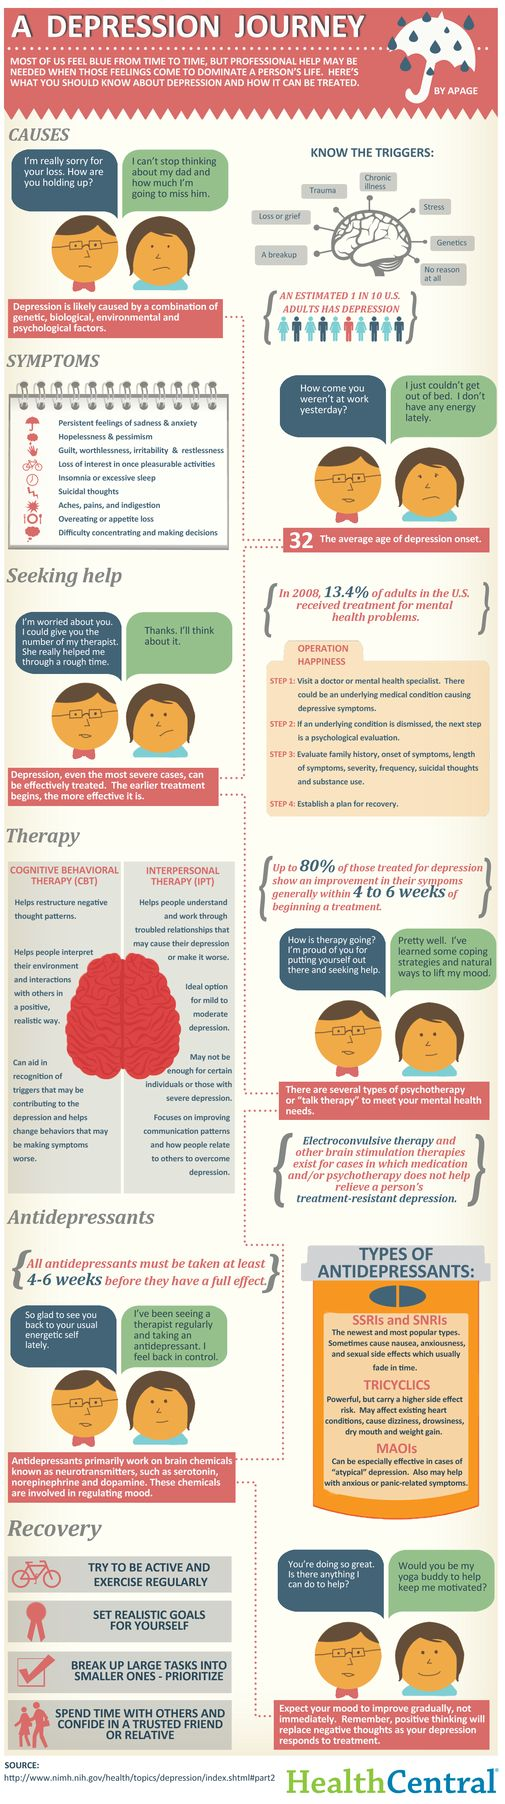 Mental Health depression infographic Repinned by Venture munity Services